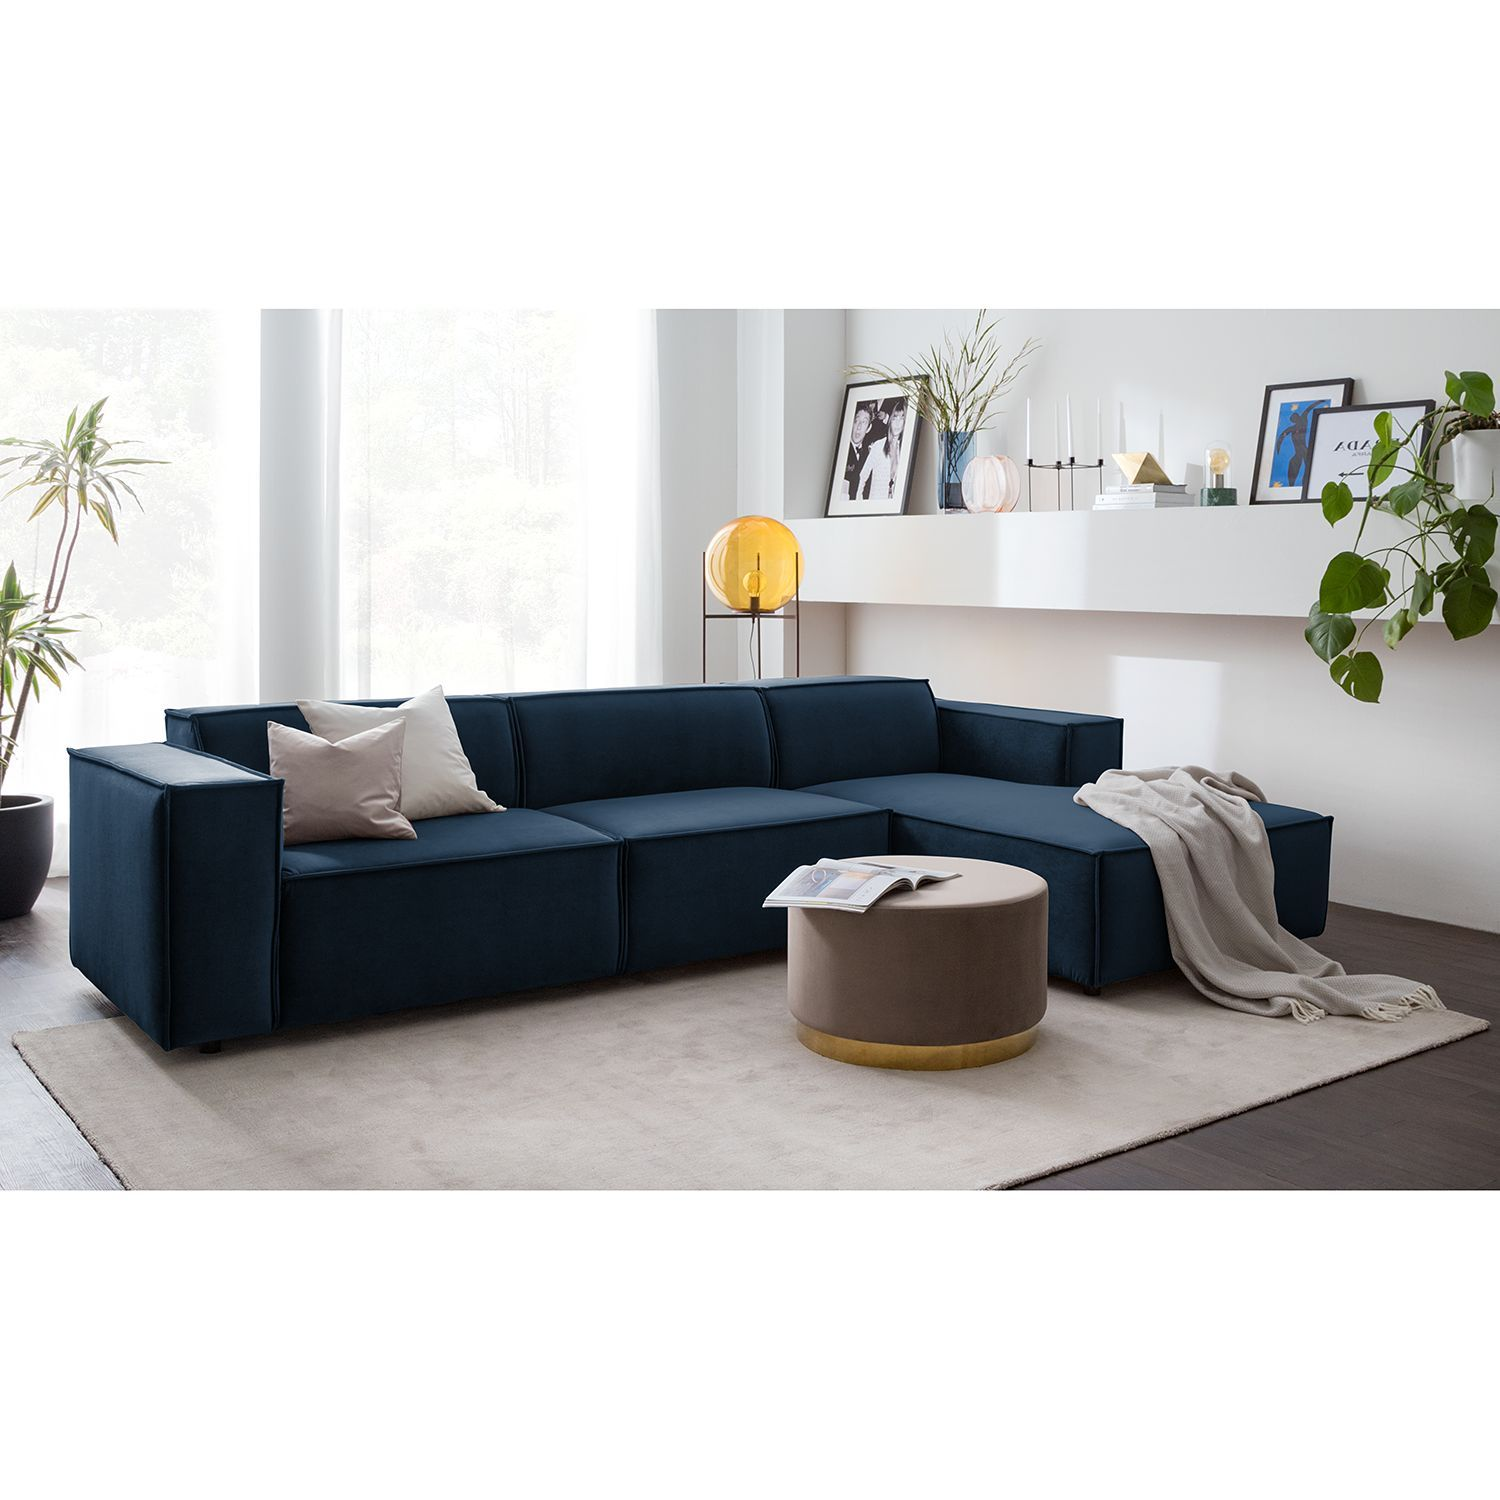 Ecksofa Home24 CouchSofaFurniture In 2019Sofasamp; V Couches Kinx y7gvIf6Yb